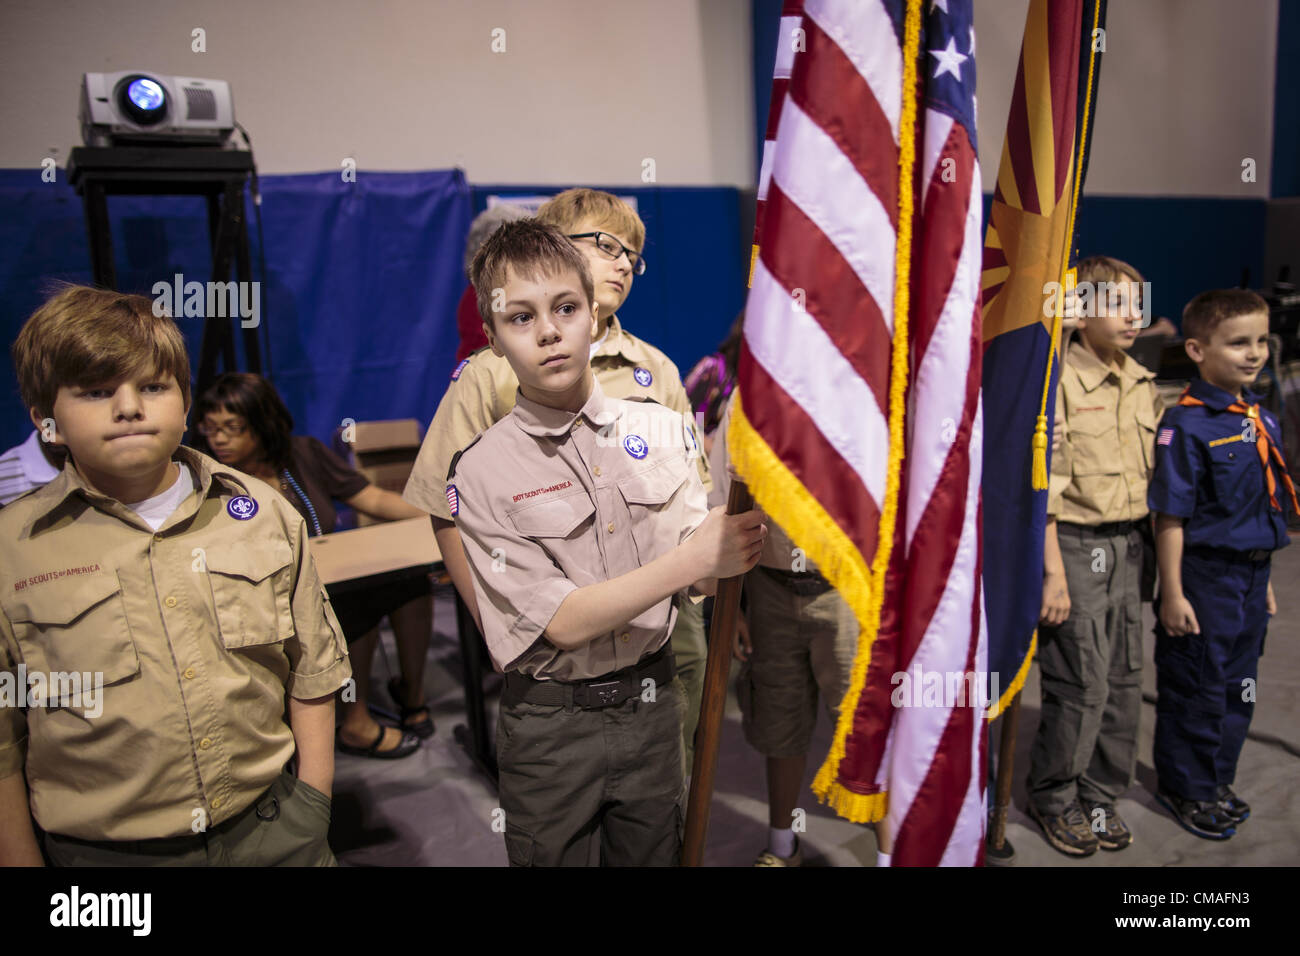 Boy Scout Troop Stock Photos & Boy Scout Troop Stock Images